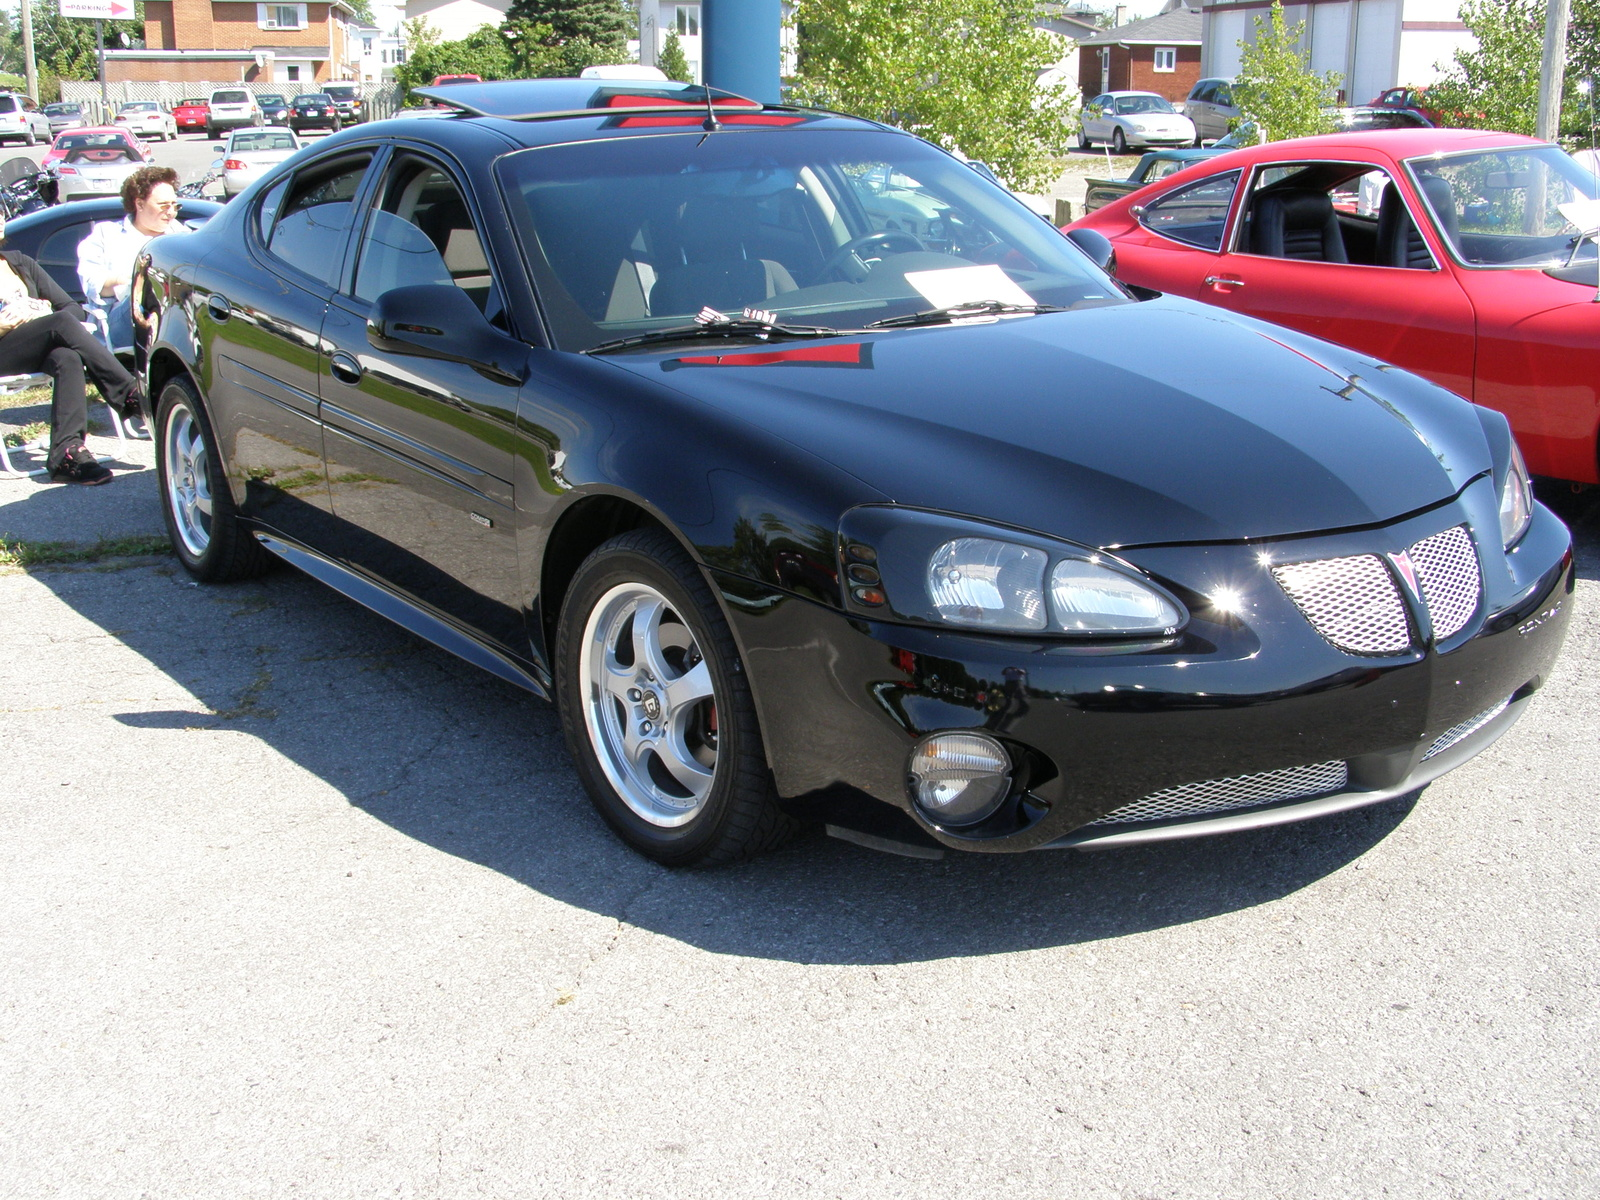 2004 Pontiac Grand Prix - Pictures